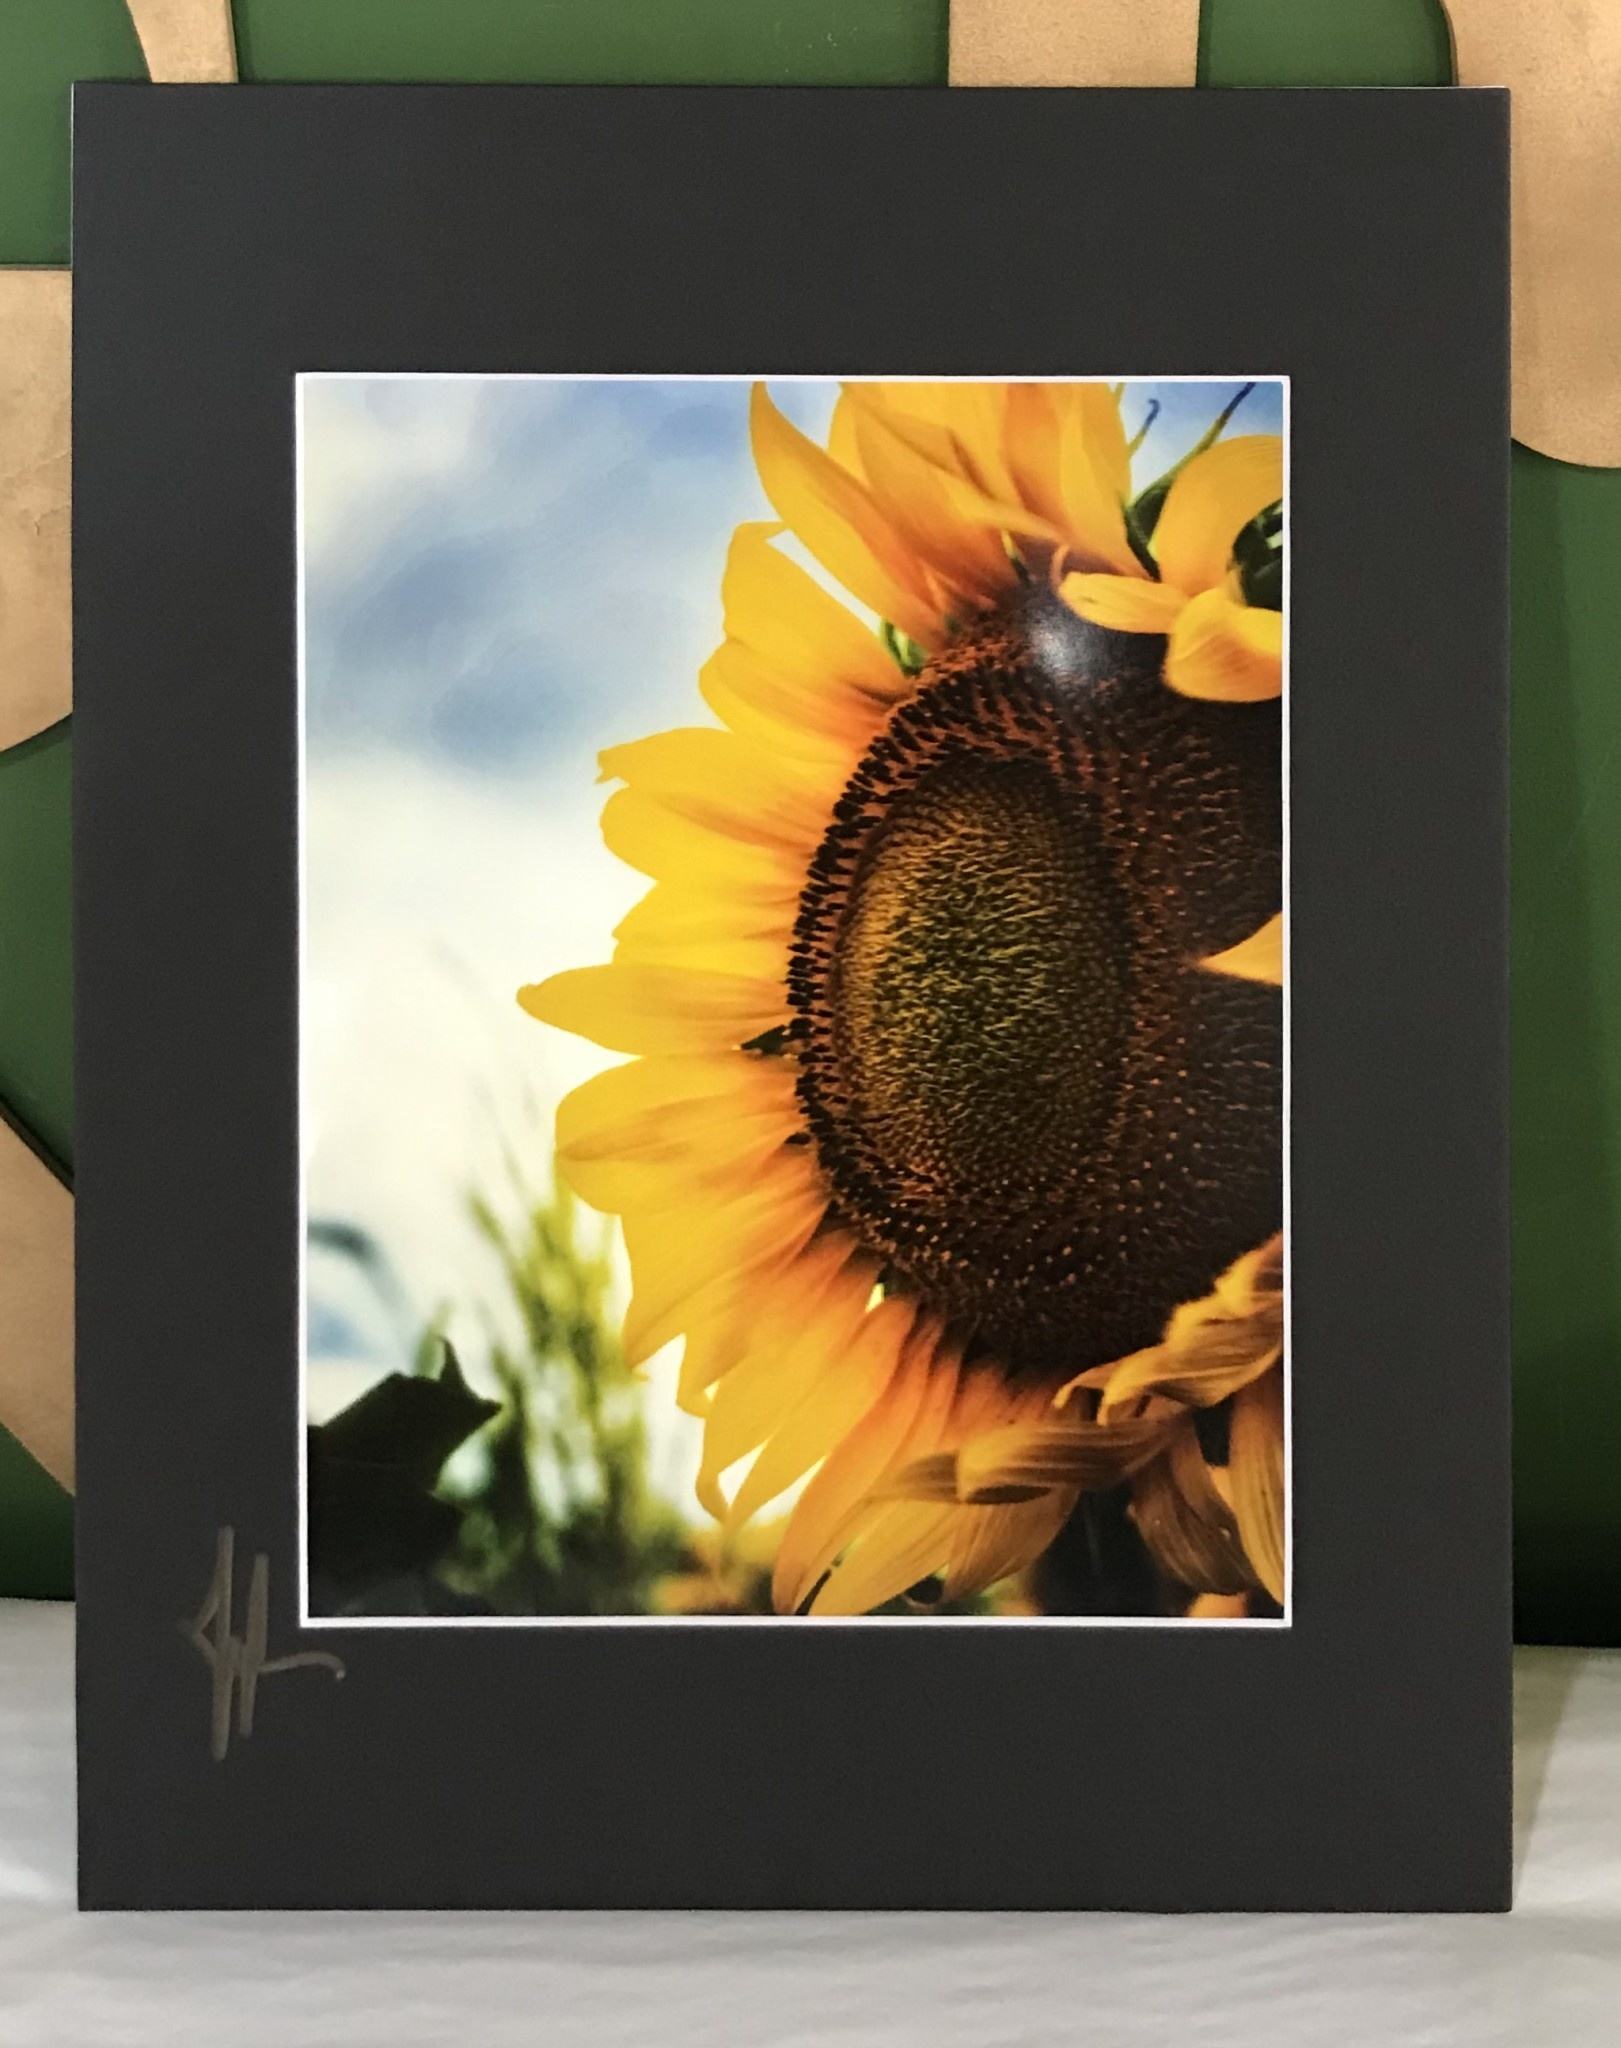 Drone-tography Drone-tography Sunflower #2 8x10 print